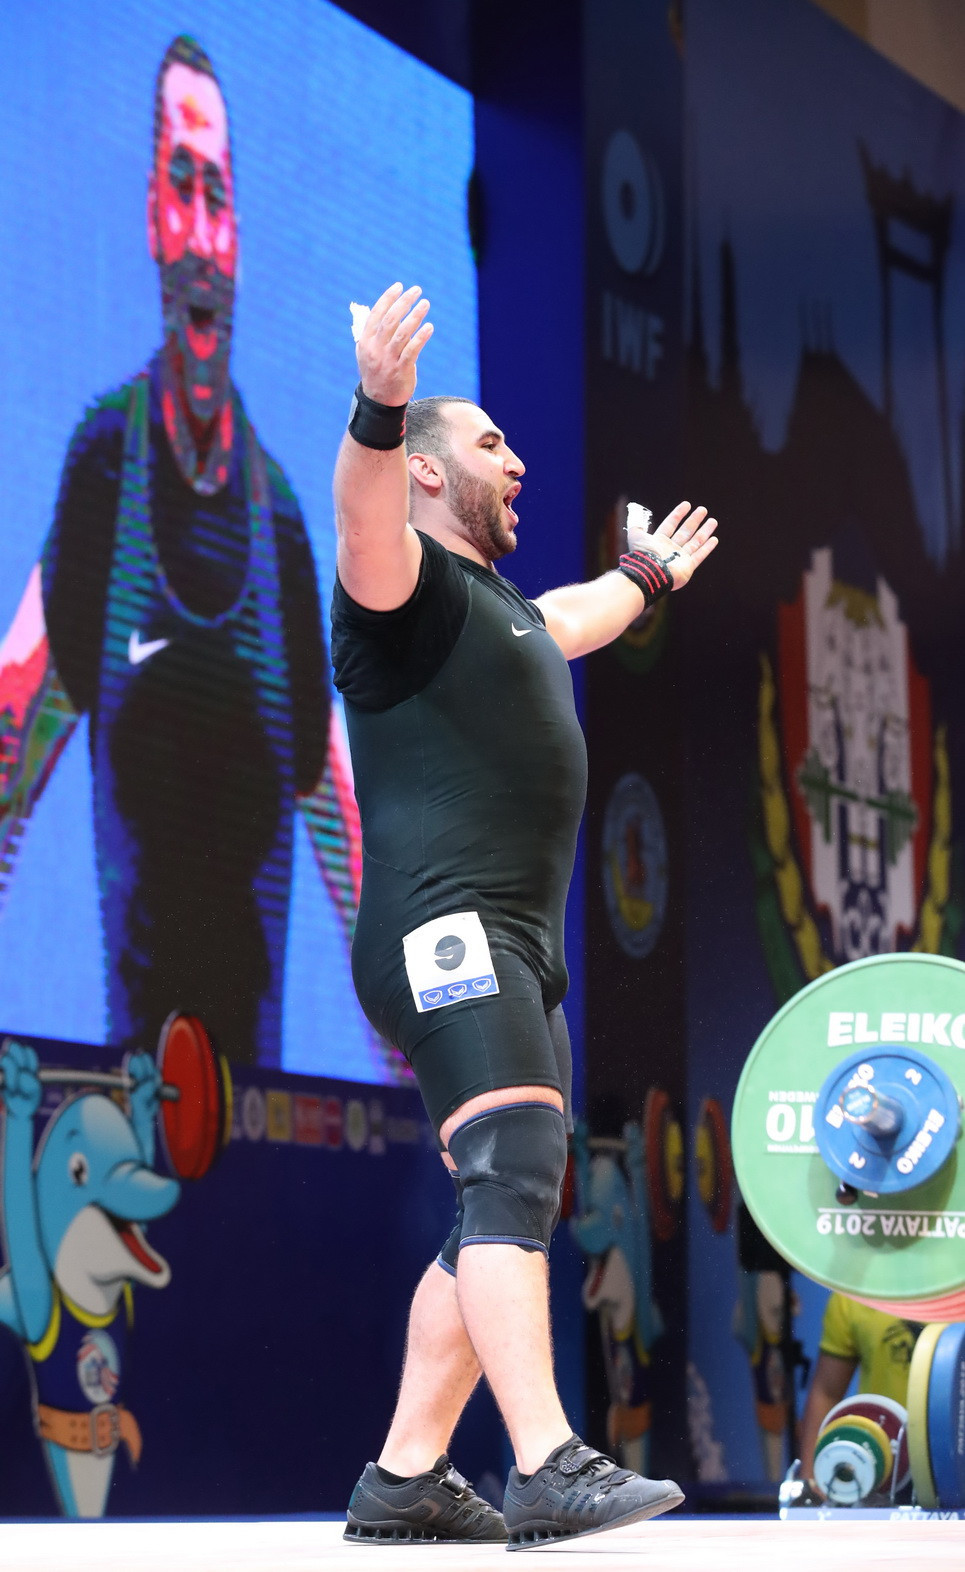 Armenia's Simon Martirosyan successfully defended his men's 109 kilograms title at the IWF World Championships ©IWF